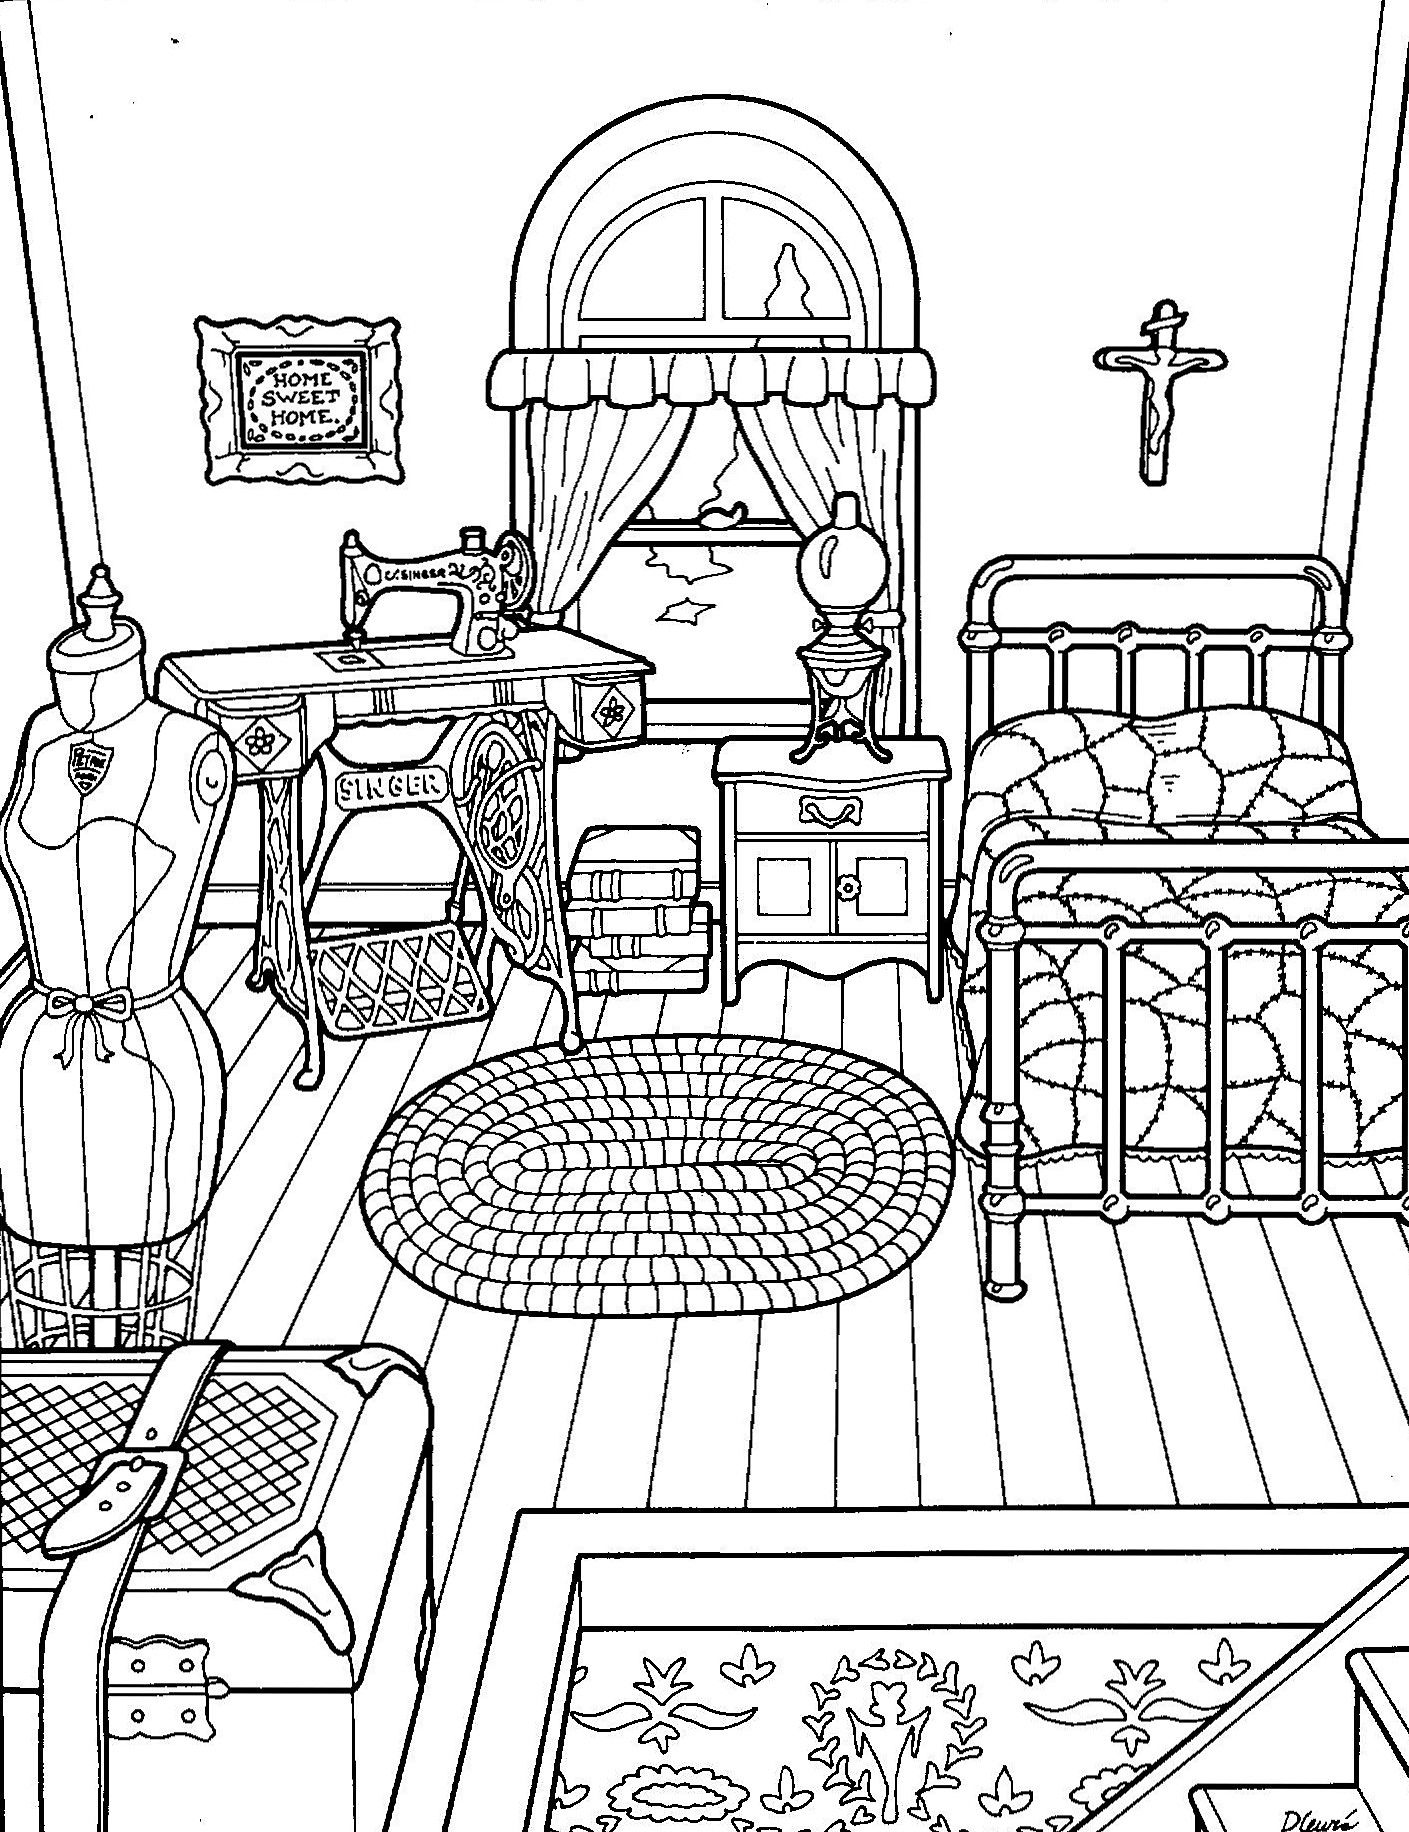 Printable coloring pages coloring pages for kids coloring books house colouring pages